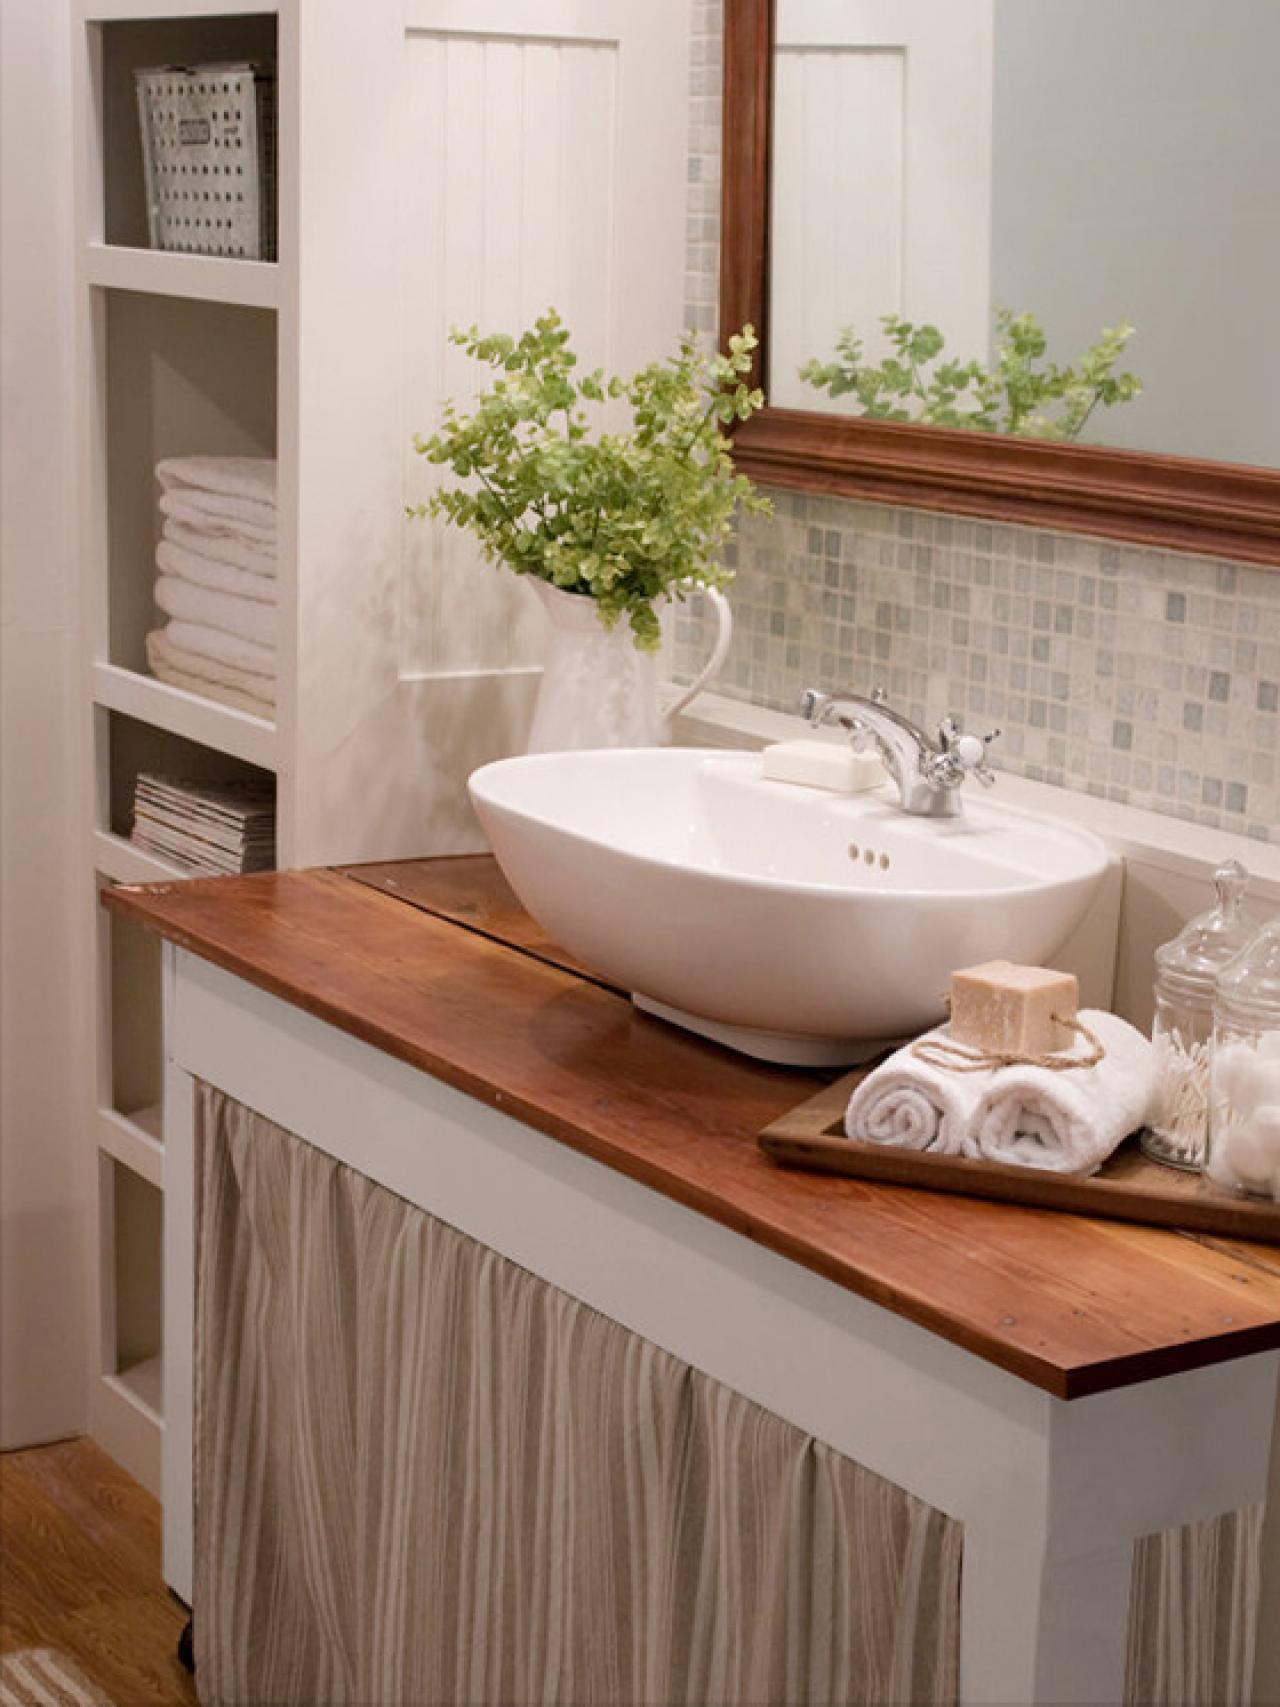 Small Bathroom Decorating Ideas HGTV - Bathroom accessories ideas for small bathroom ideas